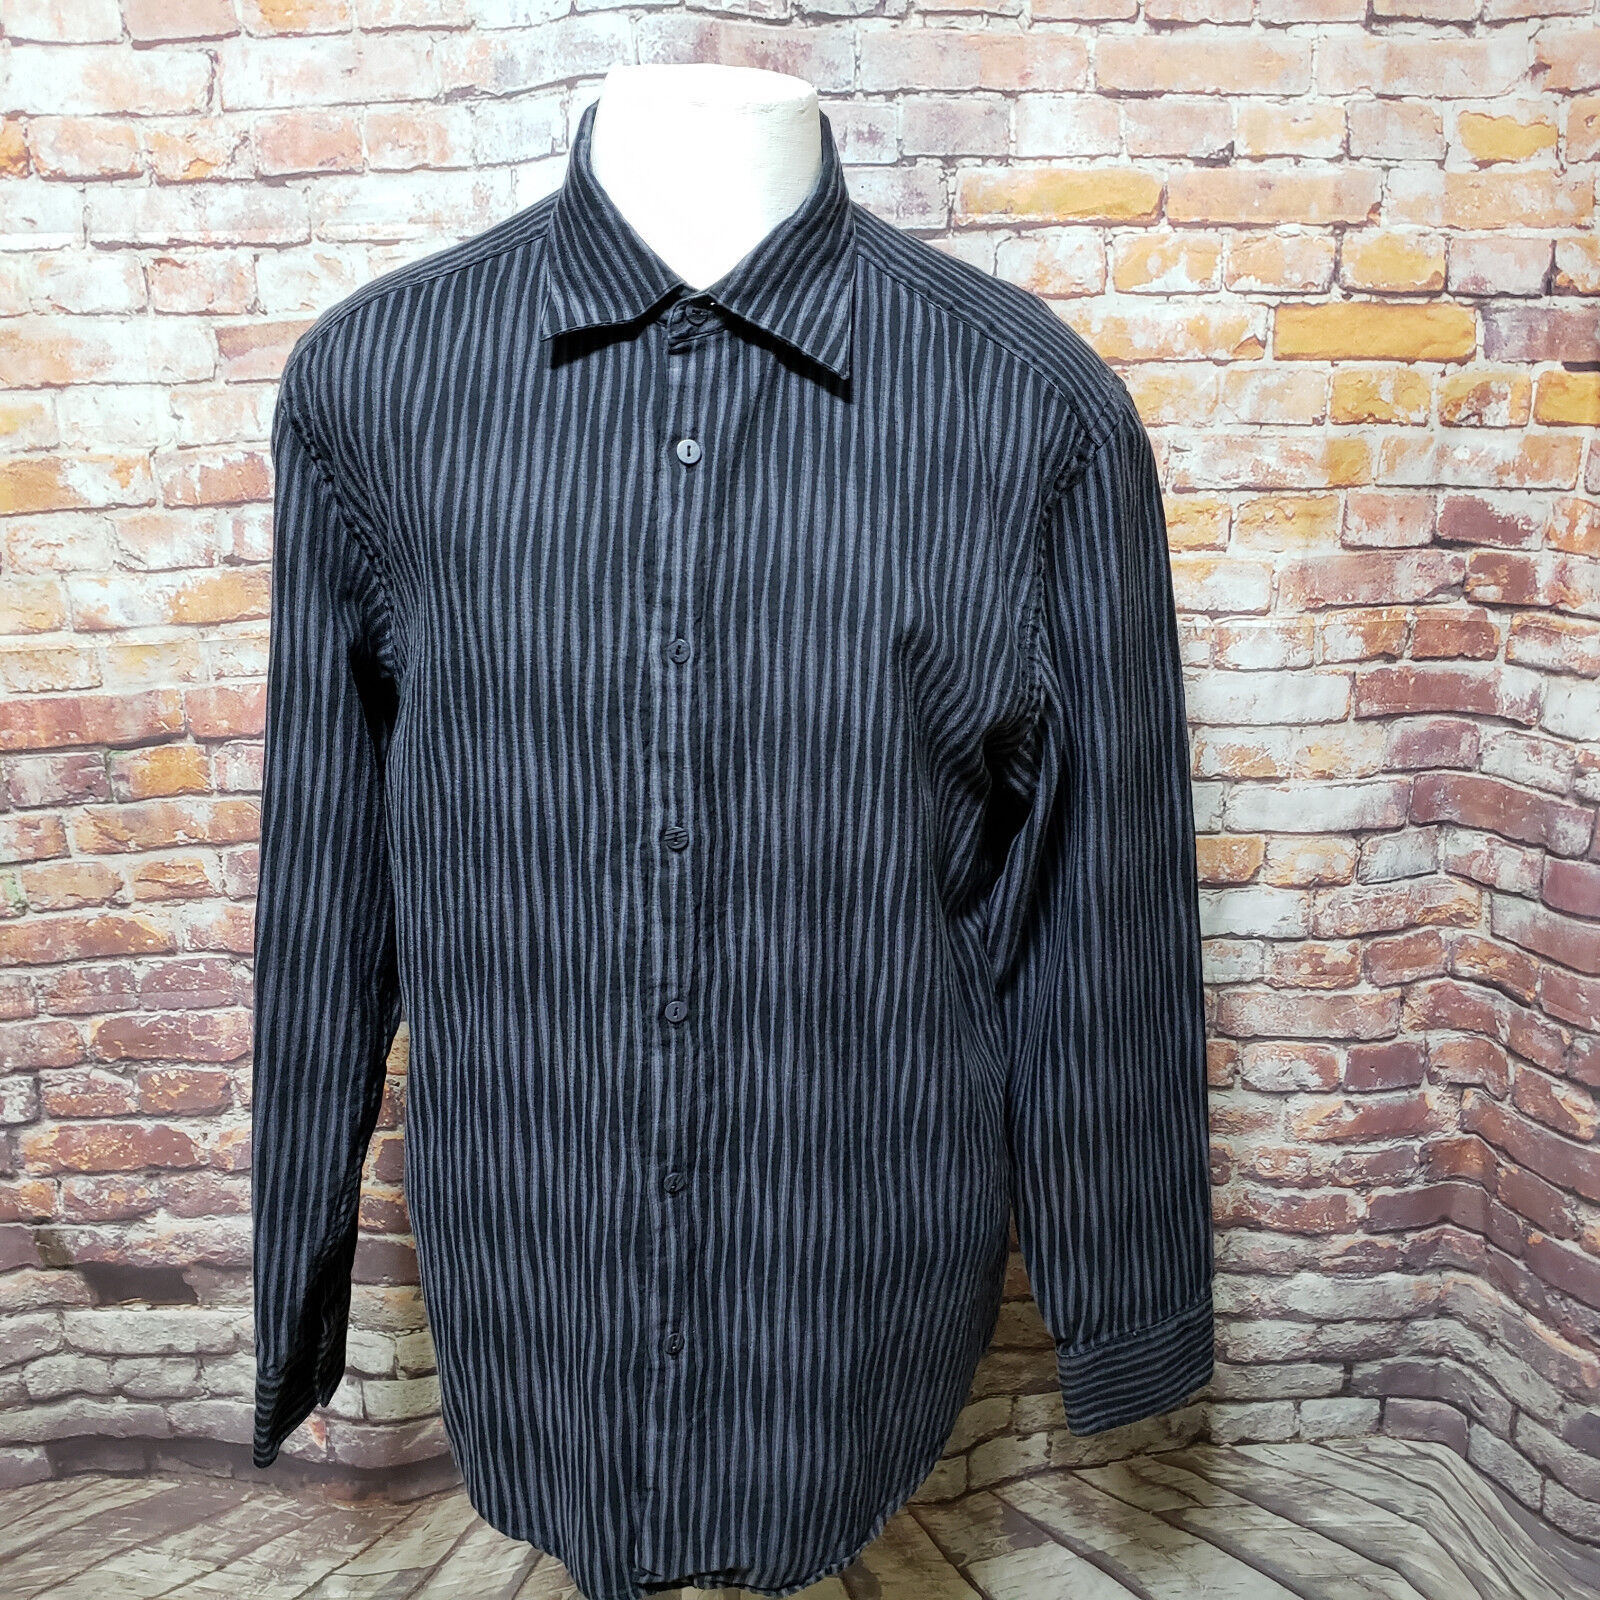 JHANE BARNES STRIPED COTTON LONG SLEEVE REGULAR FIT SHIRT SIZE XL A47-15